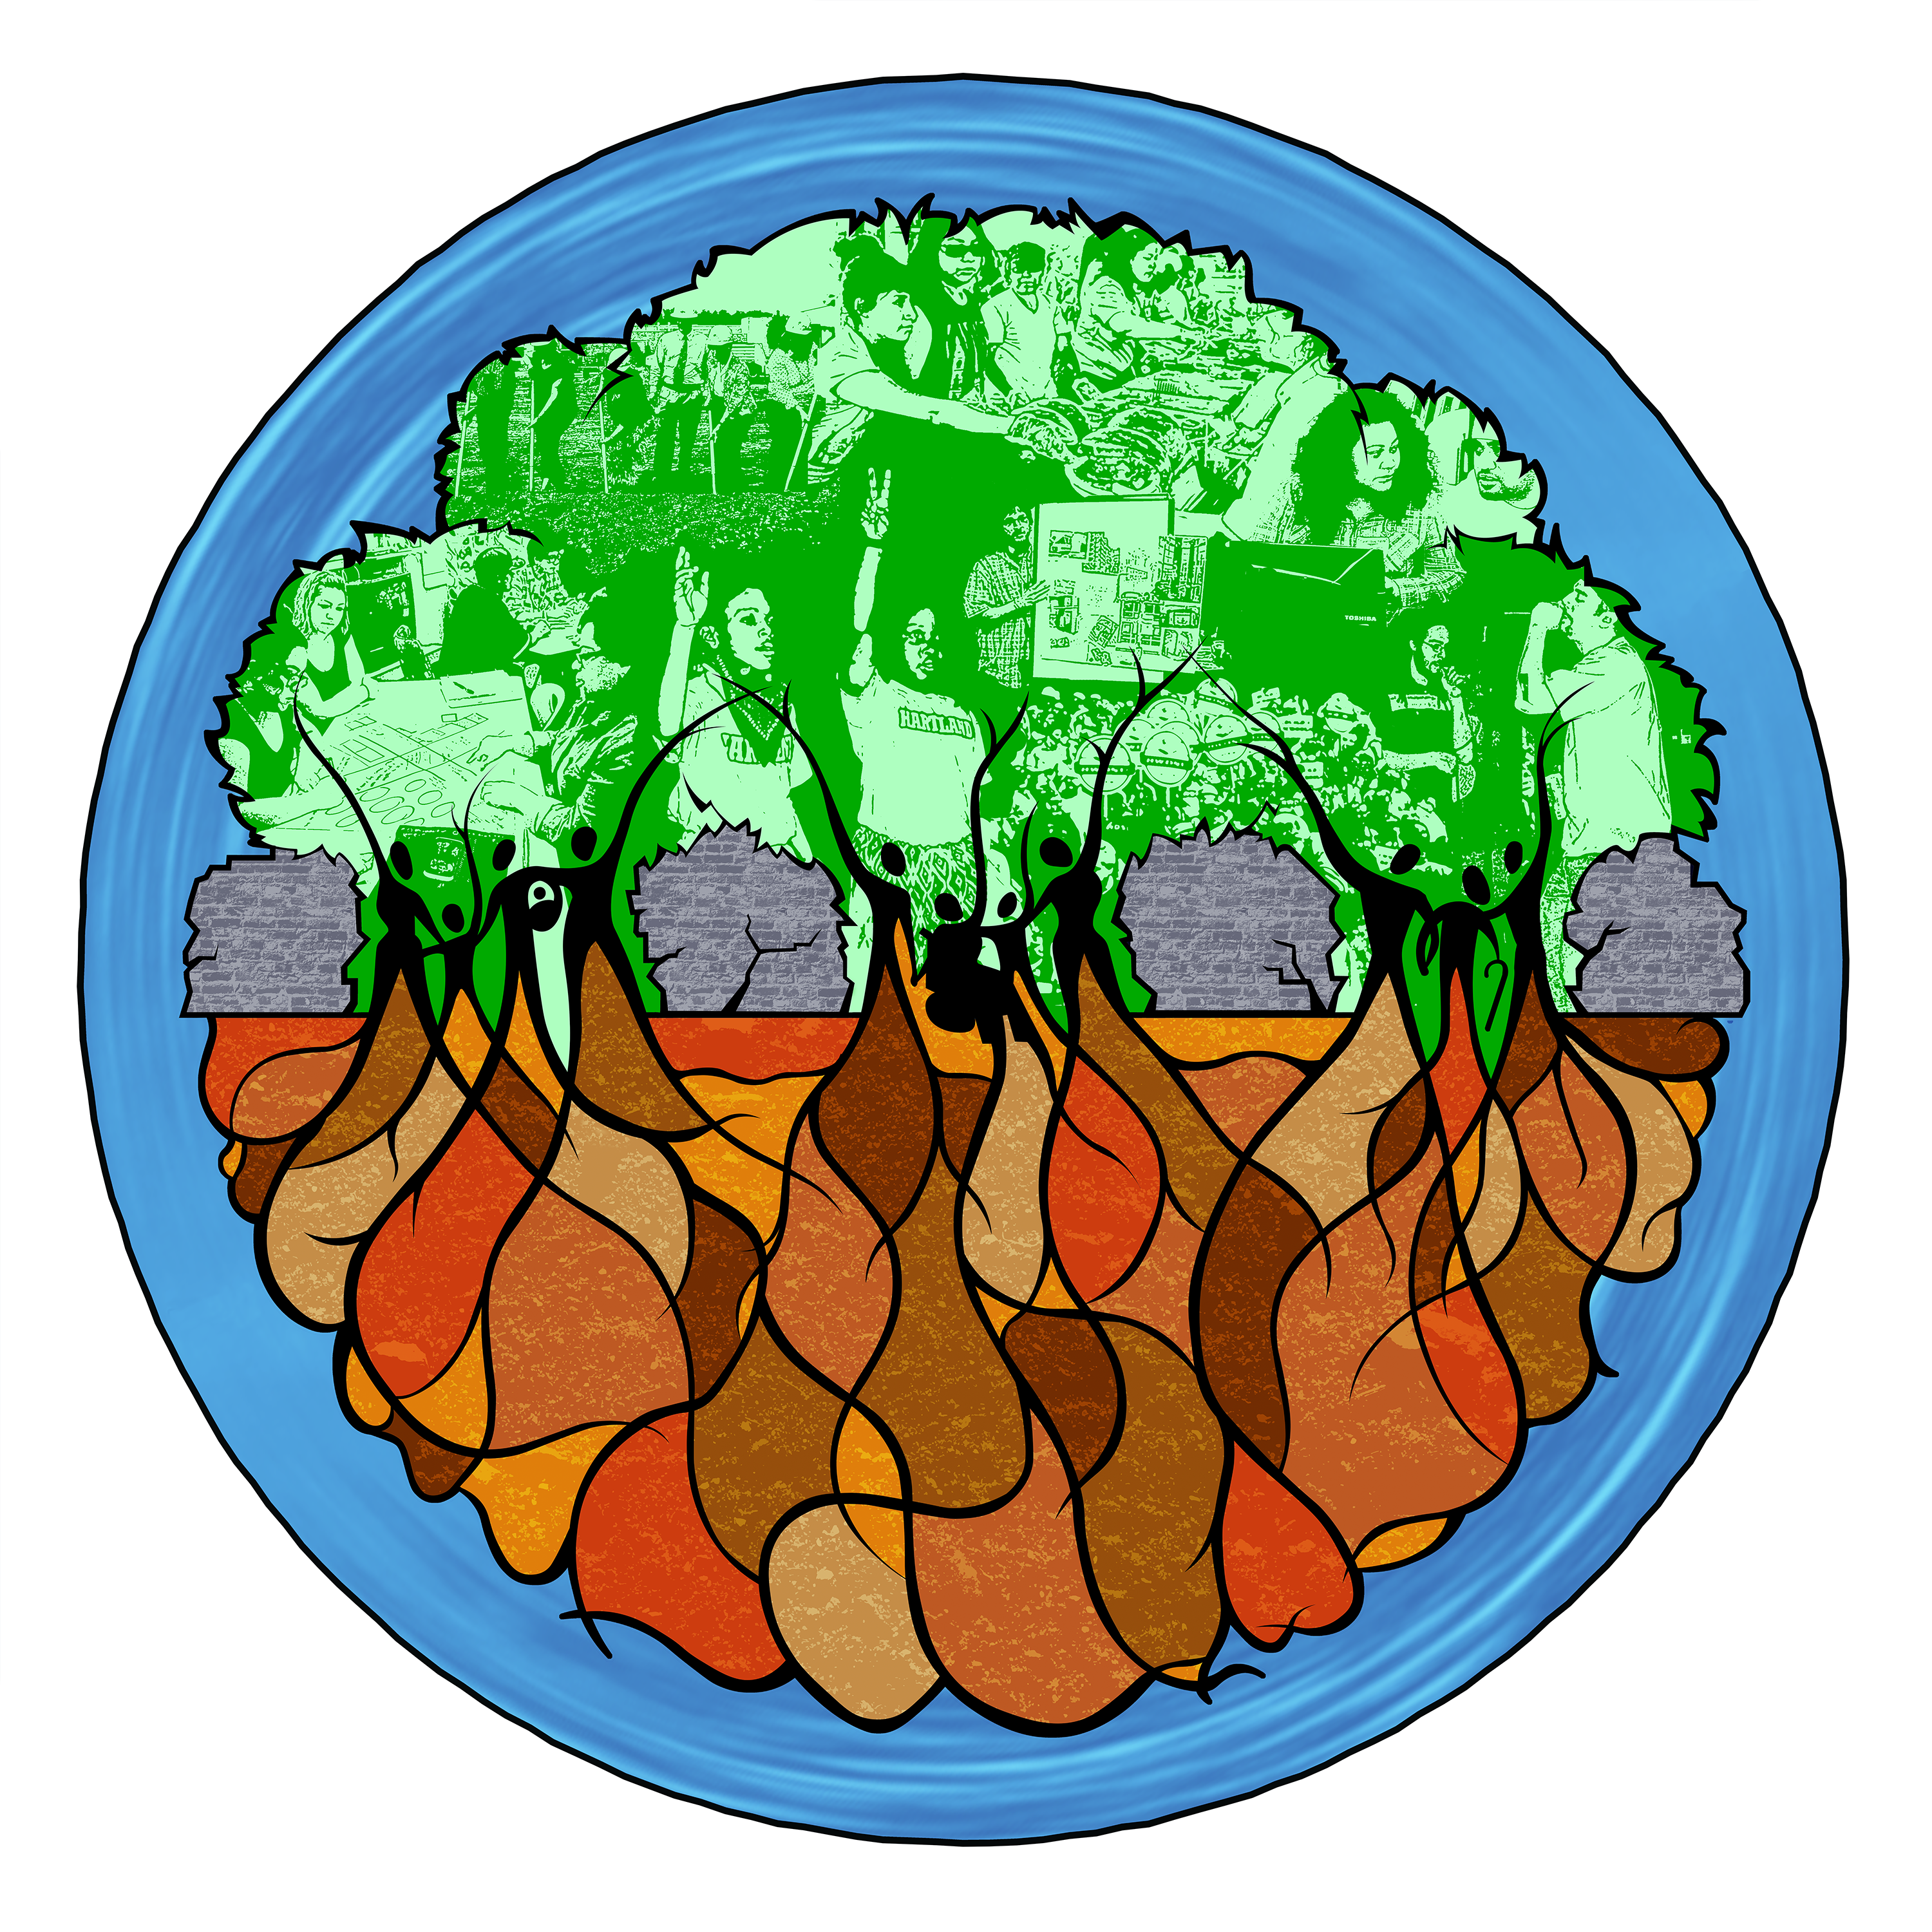 FLDC logo image with trees above, earth below, and people where they meet.